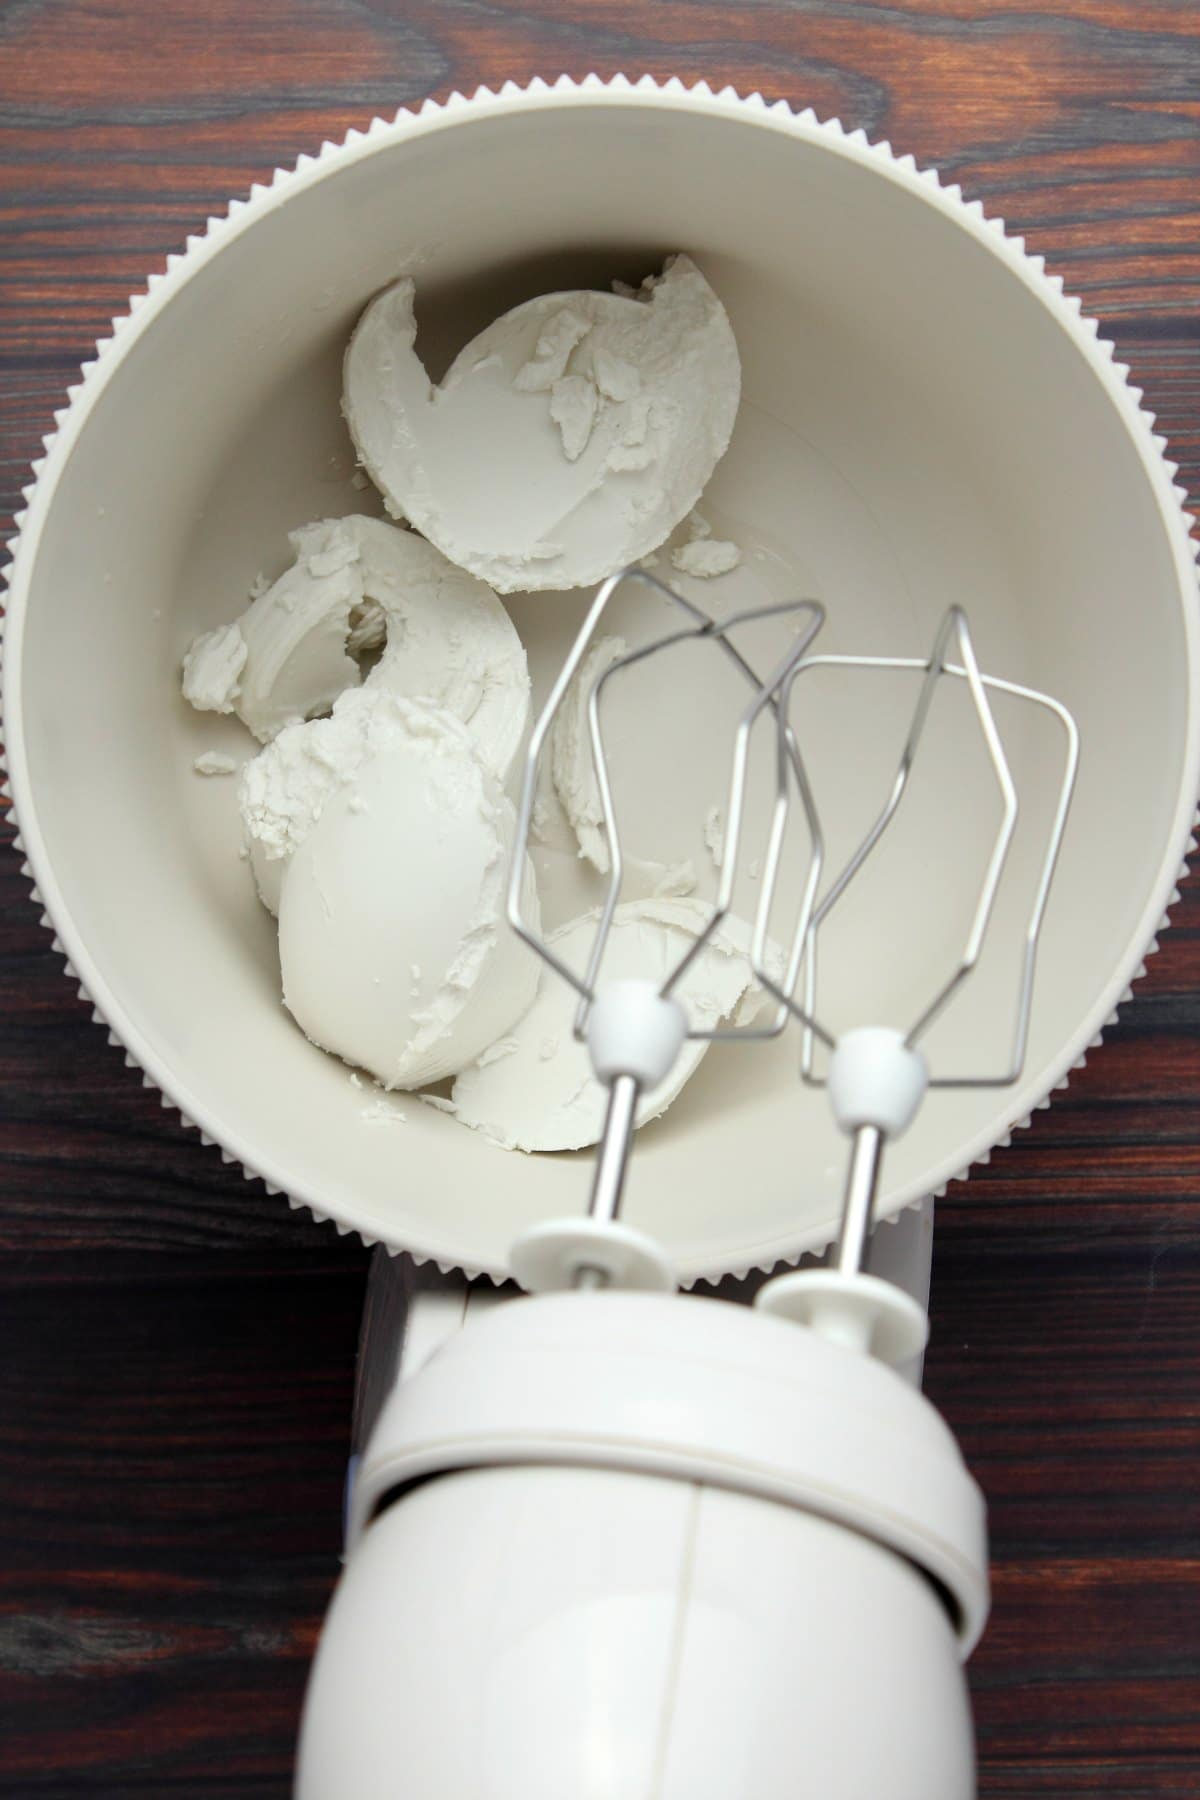 Hardened coconut cream in an electric mixer.